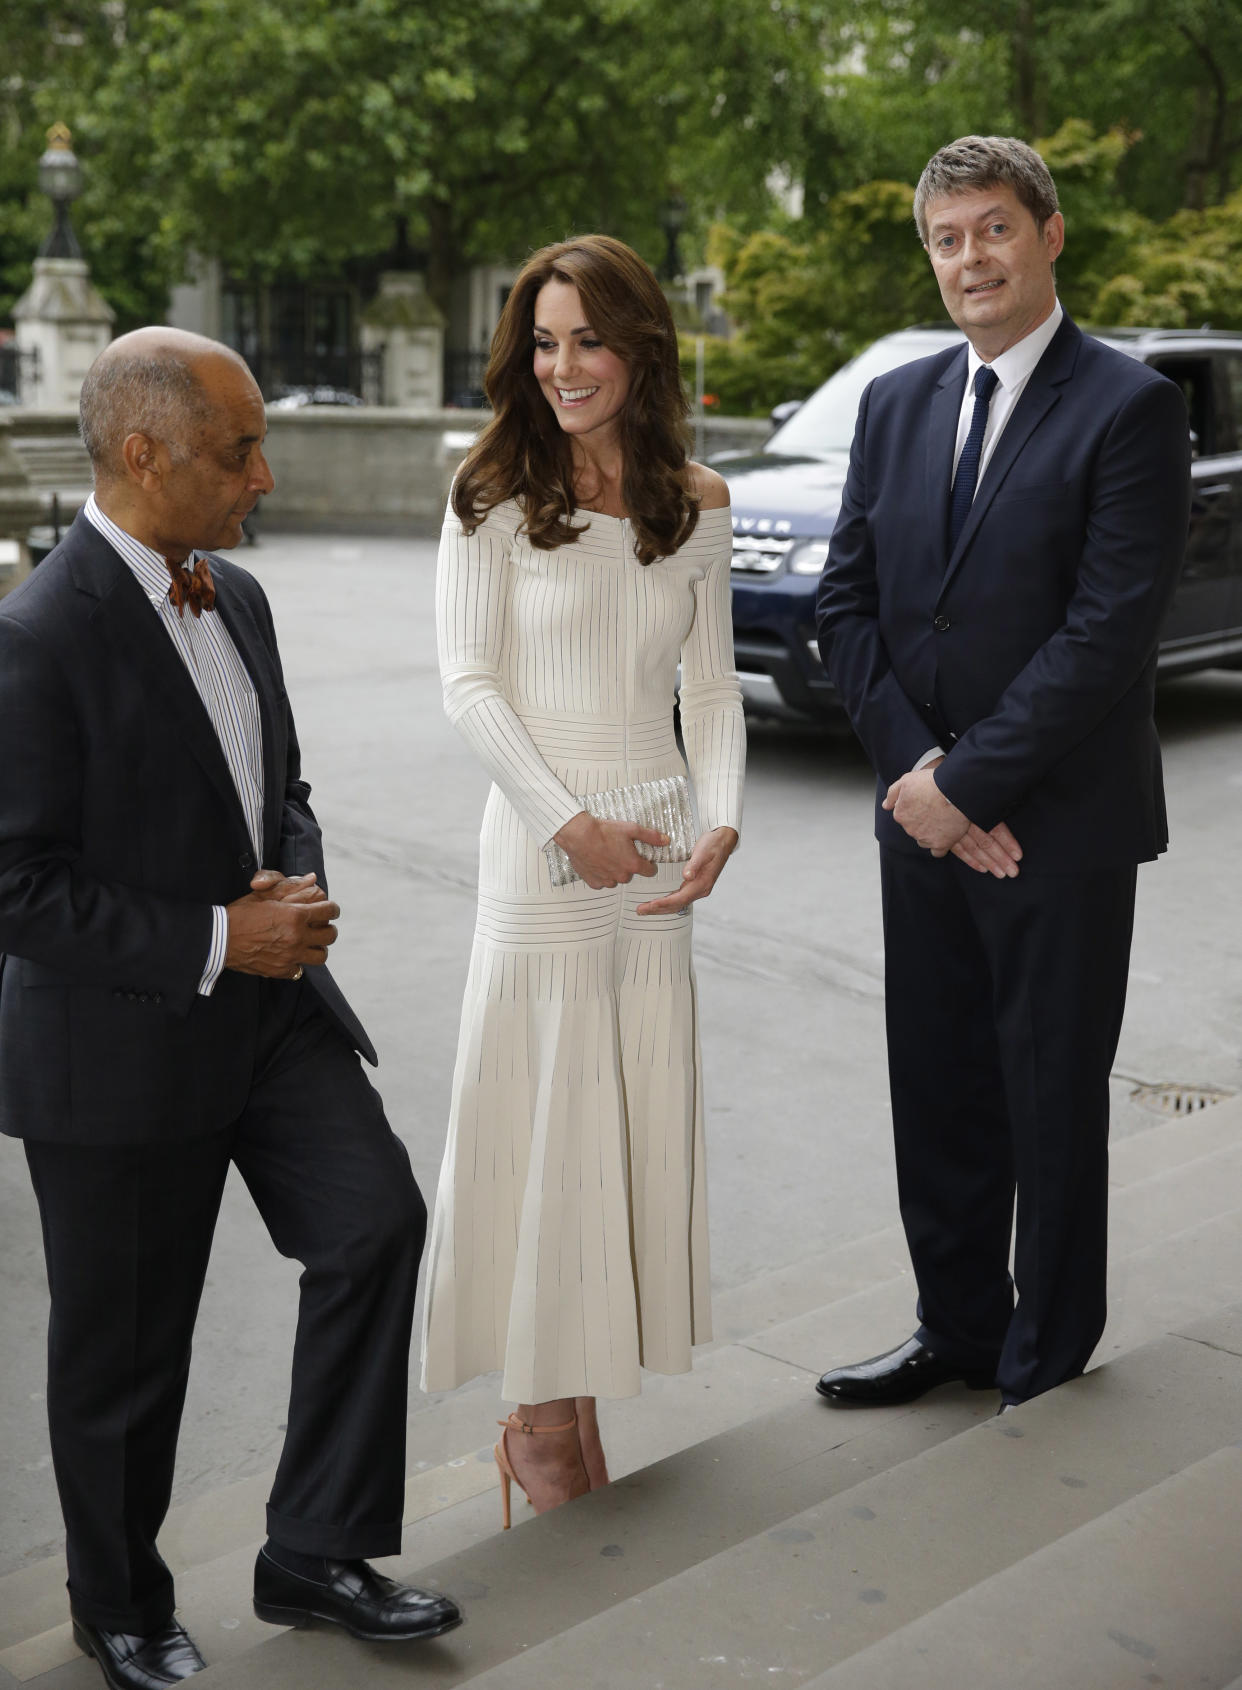 LONDON, ENGLAND - JULY 07: Catherine, Duchess of Cambridge is greeted by Lord-Lieutenant Ken Olisa (L) and Sir Michael Dixon, Director of the Natural History Museum as she arrives to present the Art Fund Museum of the Year 2016 prize at a dinner hosted at the Natural History Museum on July 6, 2016 in London, United Kingdom. The Art Fund Museum of the Year prize is awarded annually to one outstanding museum which has shown exceptional imagination, innovation and achievement in the preceding year. (Photo by Matt Dunham - Pool/Getty Images)